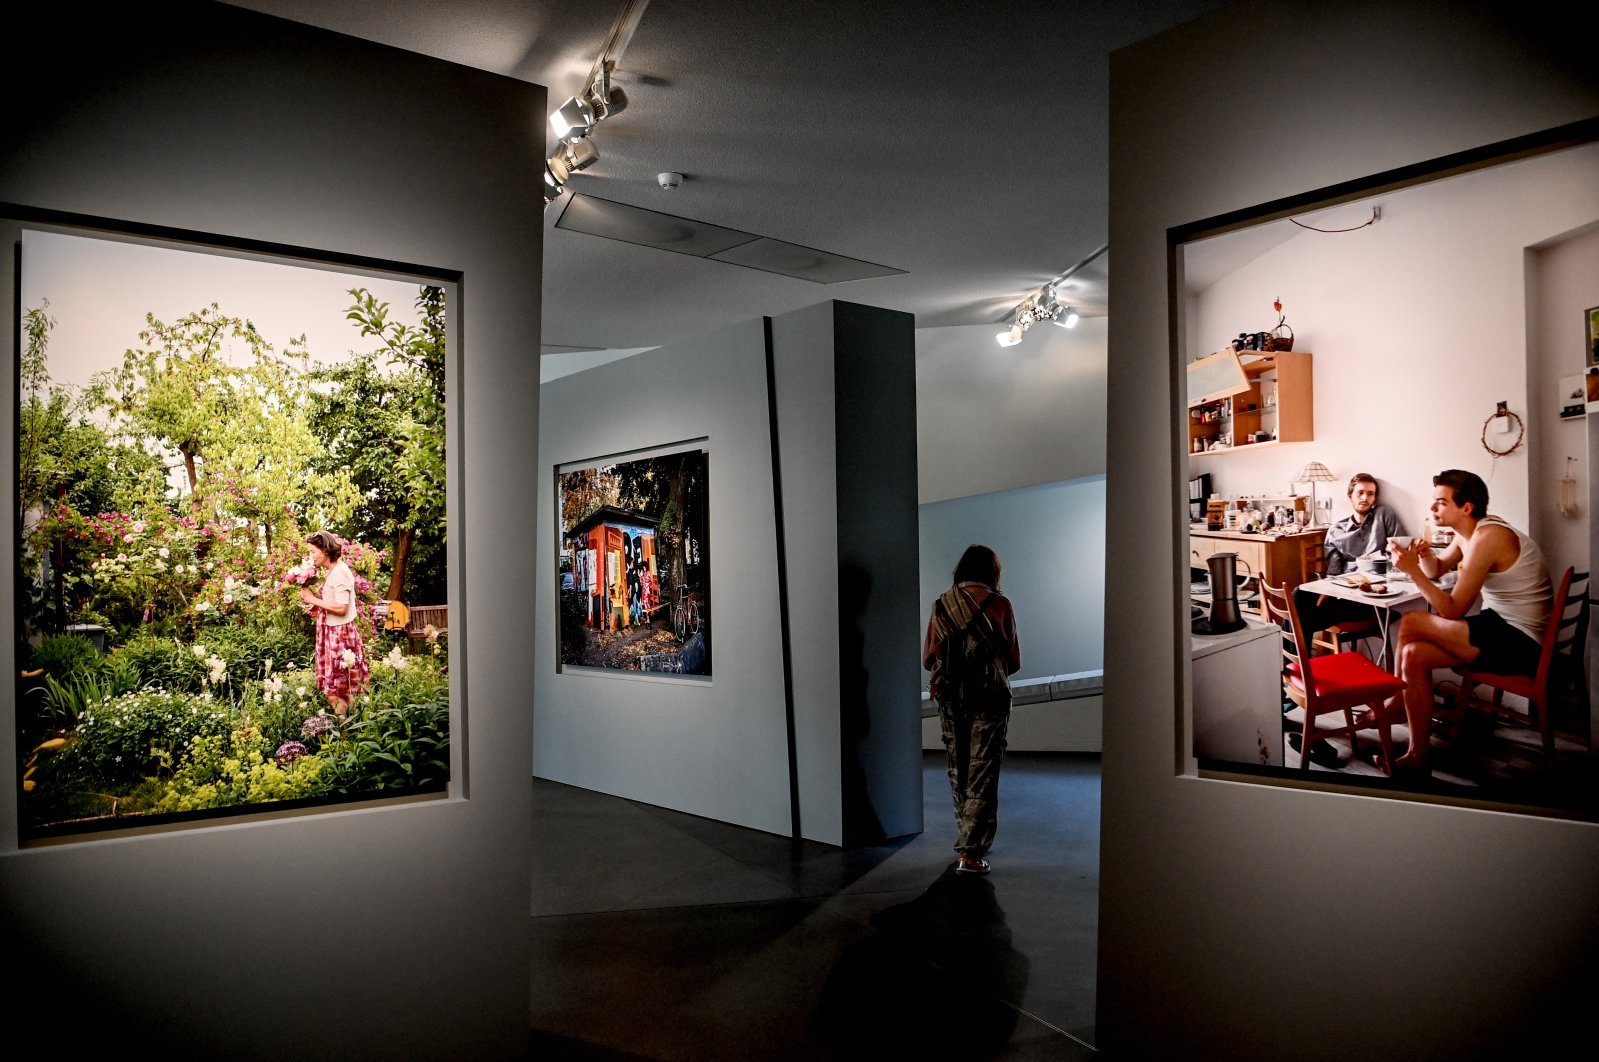 A selection of portraits by Frederic Brenner depicting Jewish life on display in the Jewish Museum Berlin. (dpa Photo)